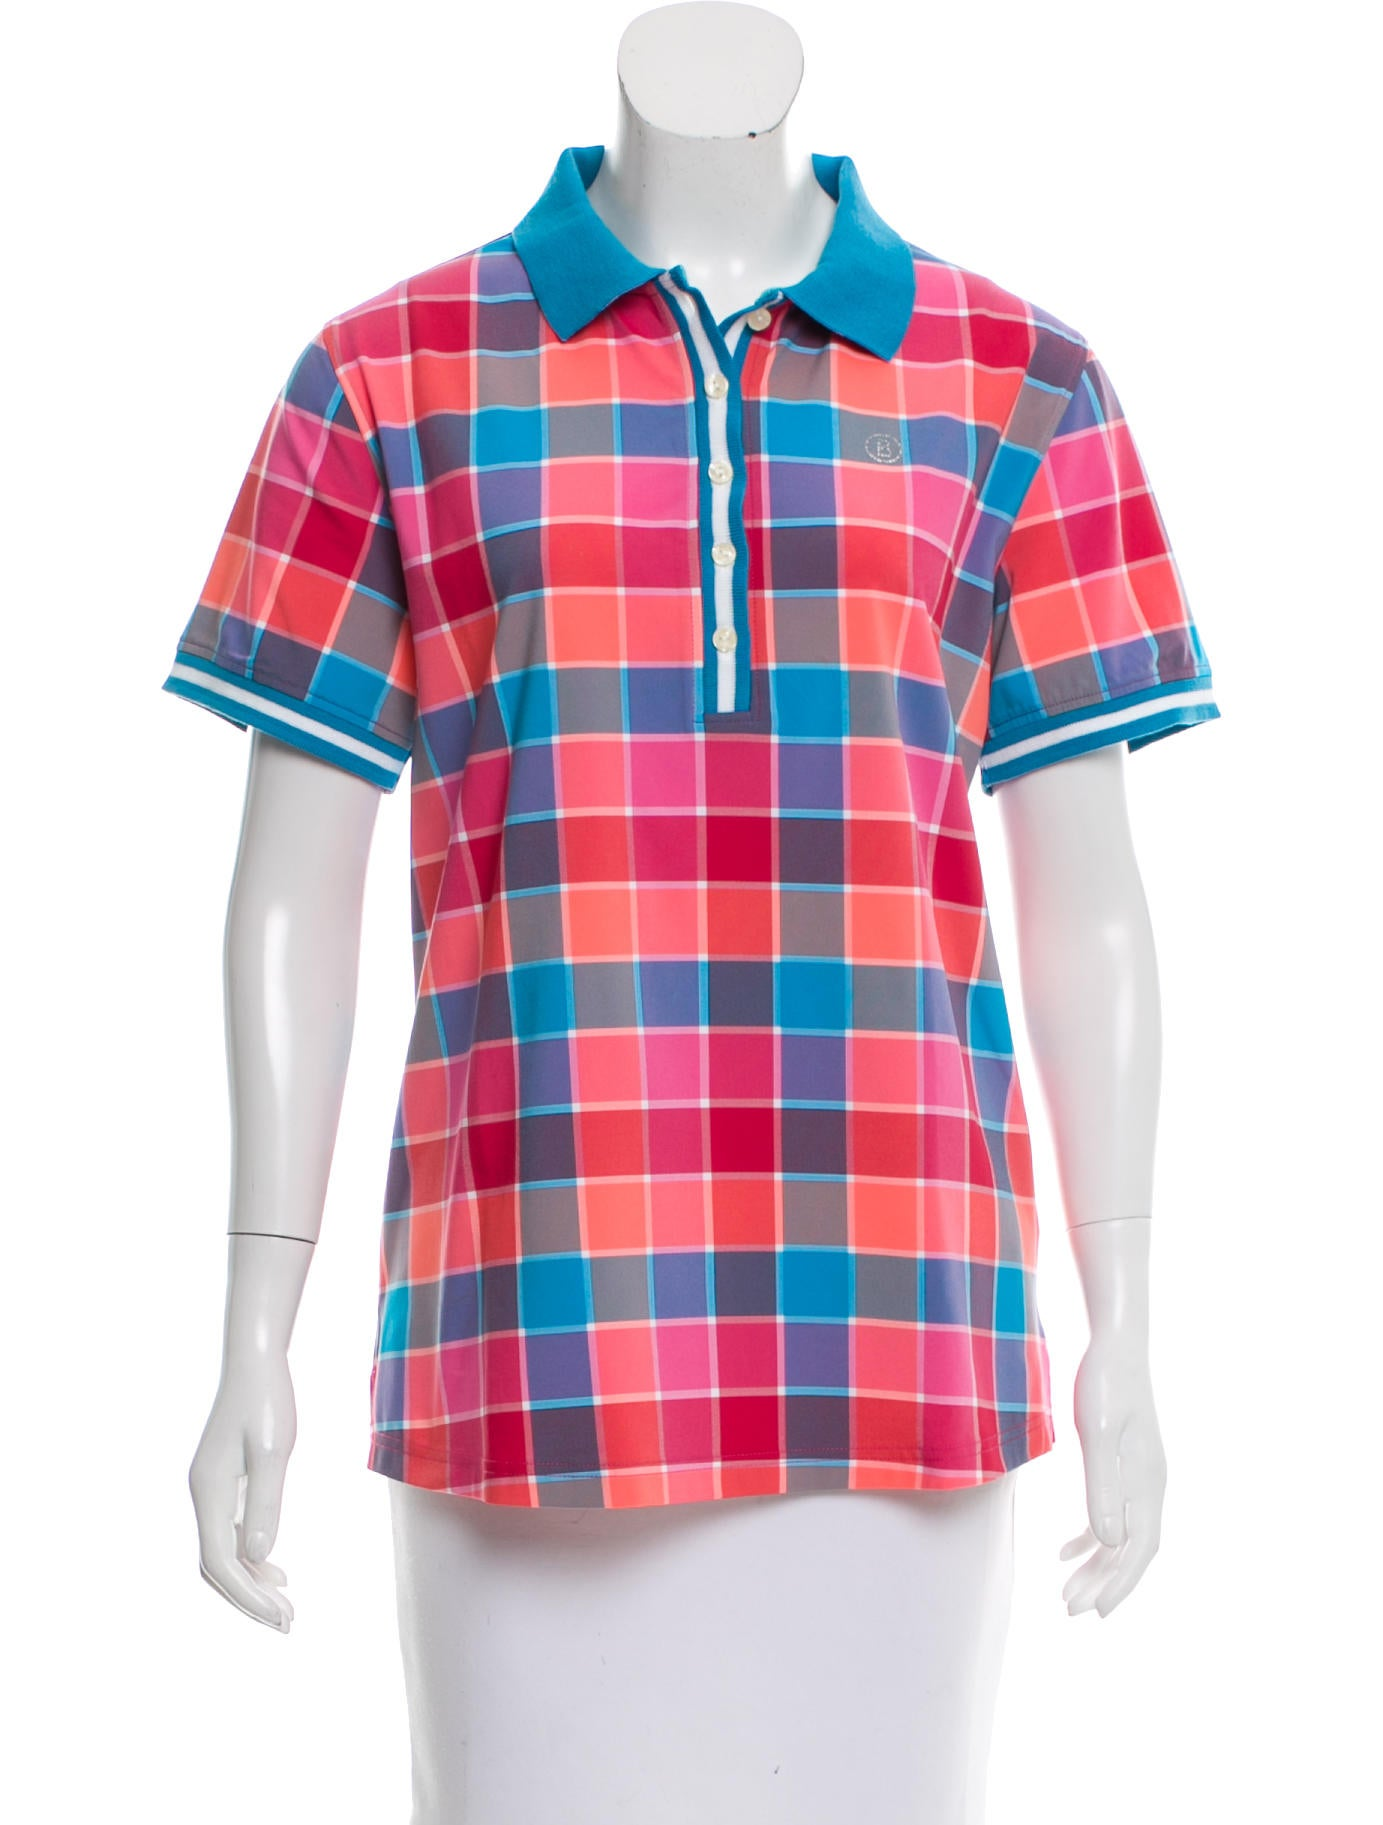 Bogner Plaid Polo Top - Clothing - WB120496 | The RealReal